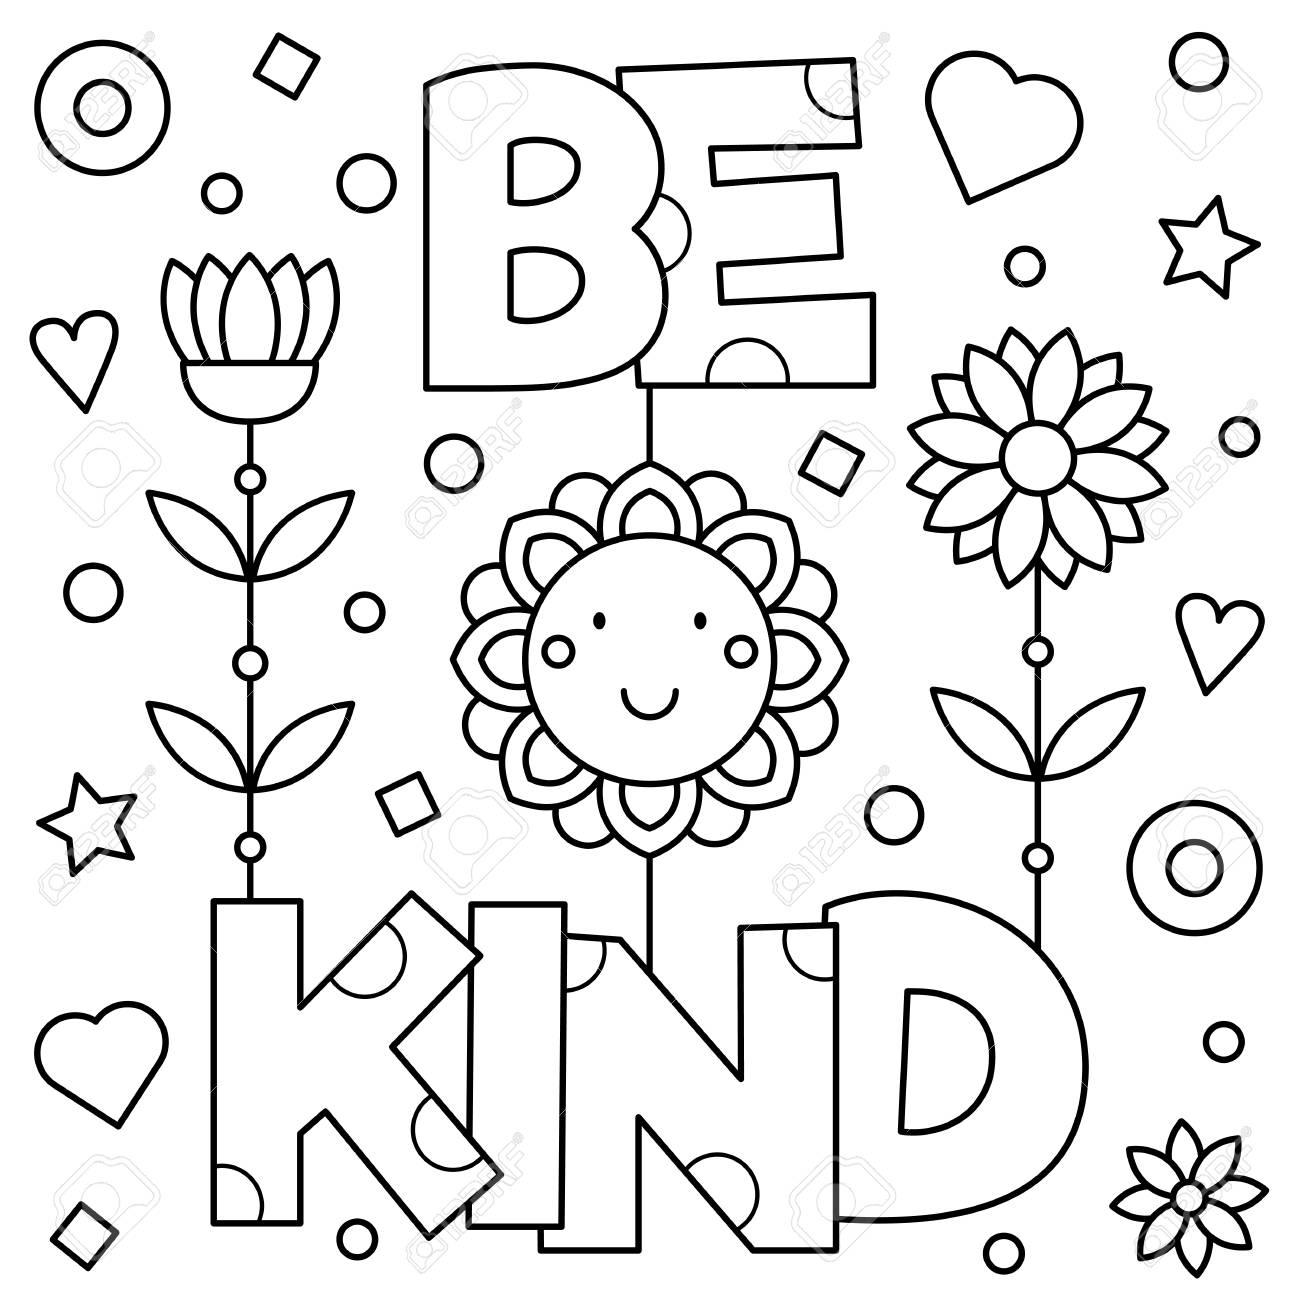 be kind coloring pages Be Kind. Coloring Page. Vector Illustration. Royalty Free Cliparts  be kind coloring pages